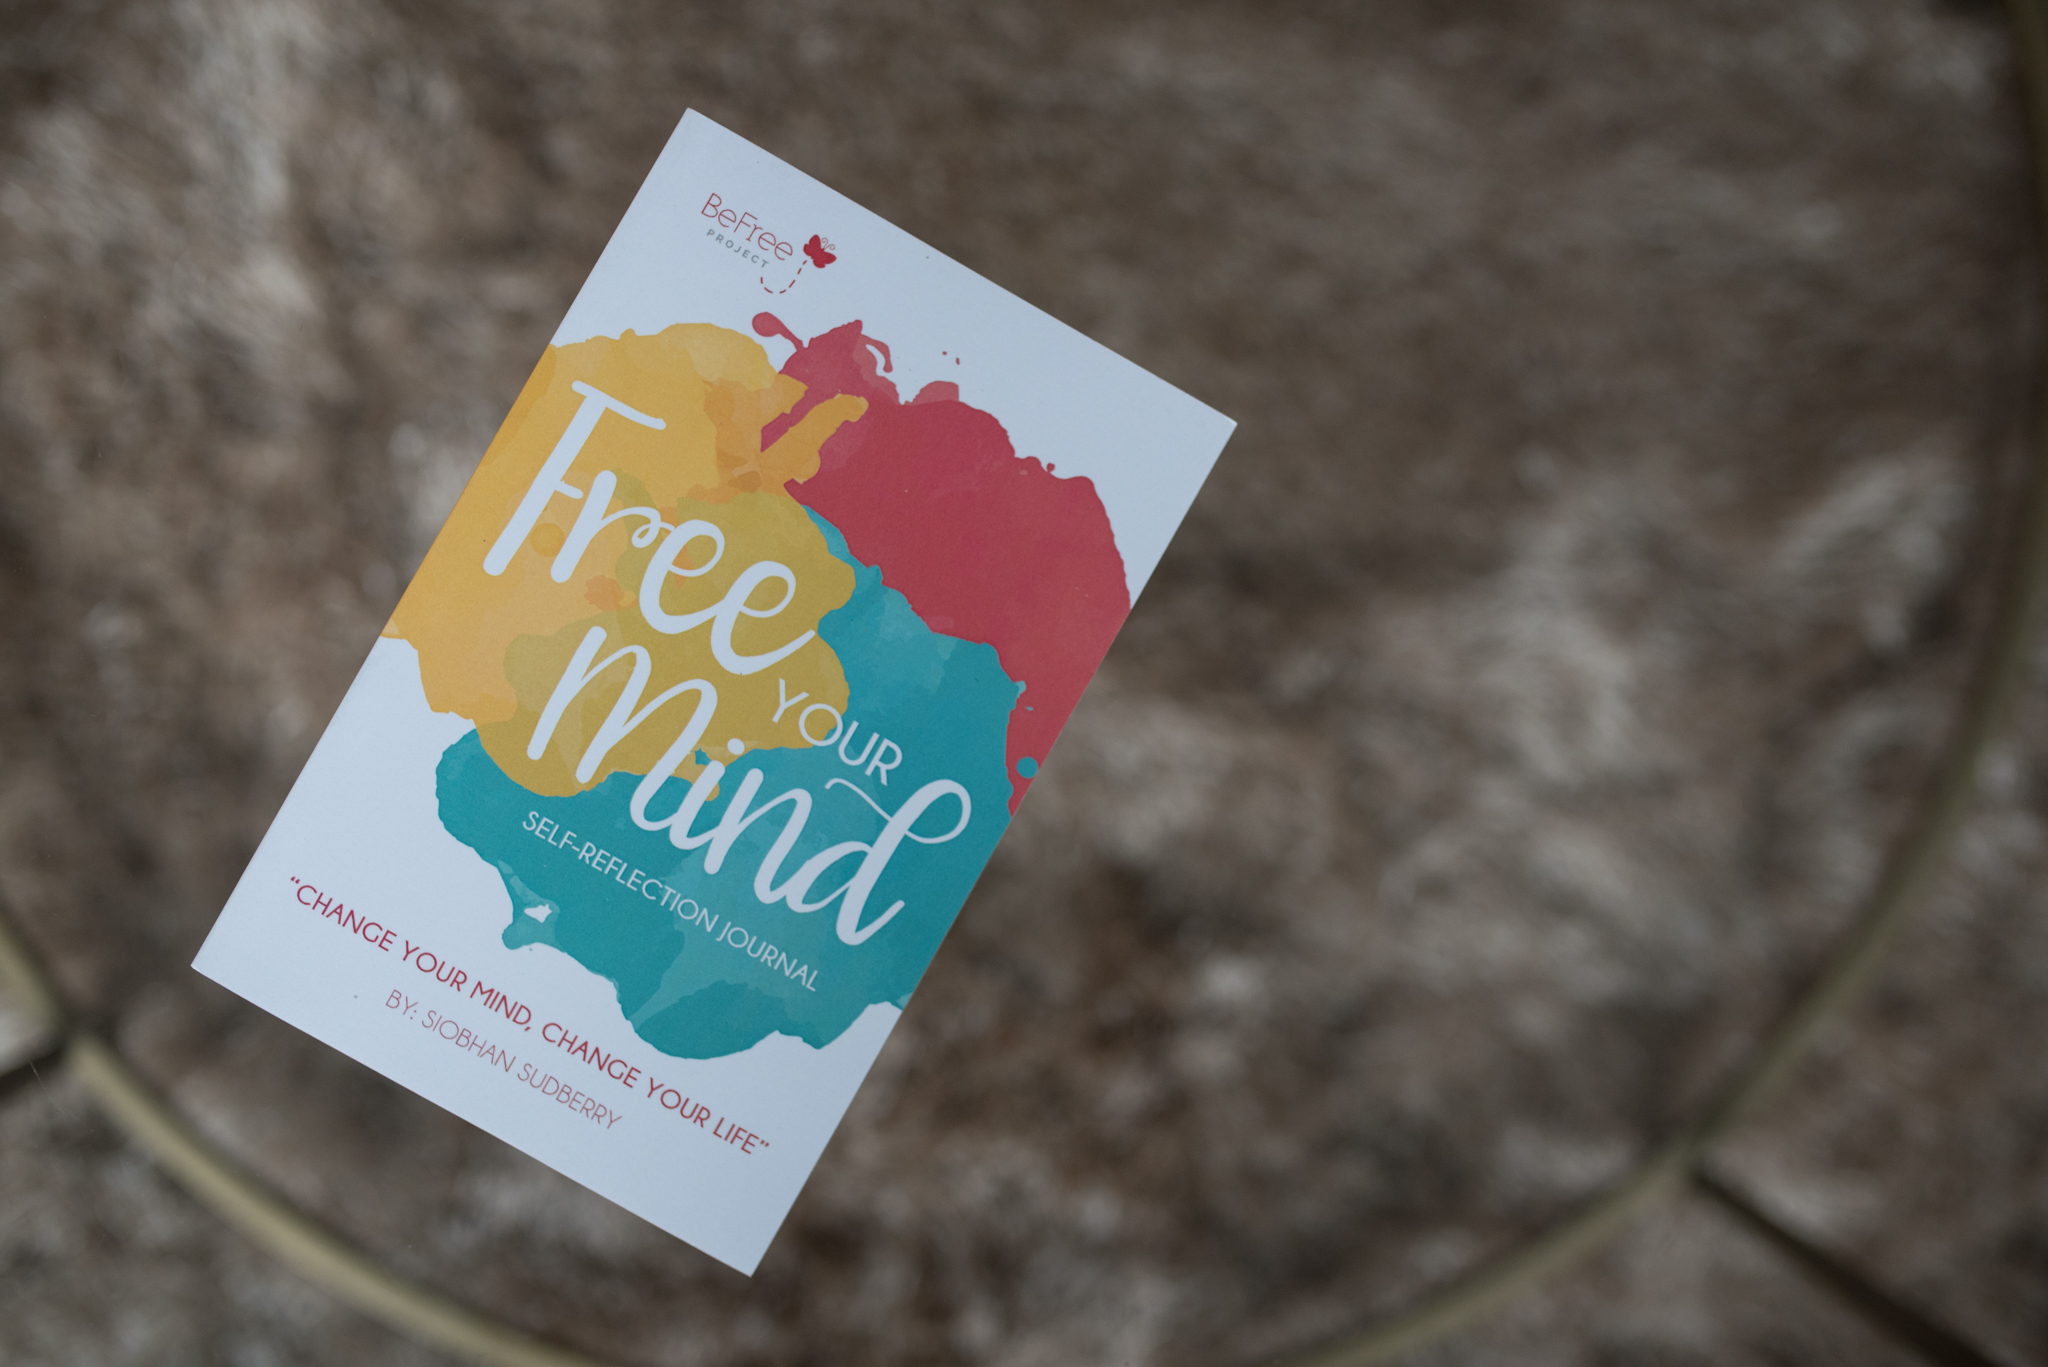 Copy of Copy of free-your-mind-journal